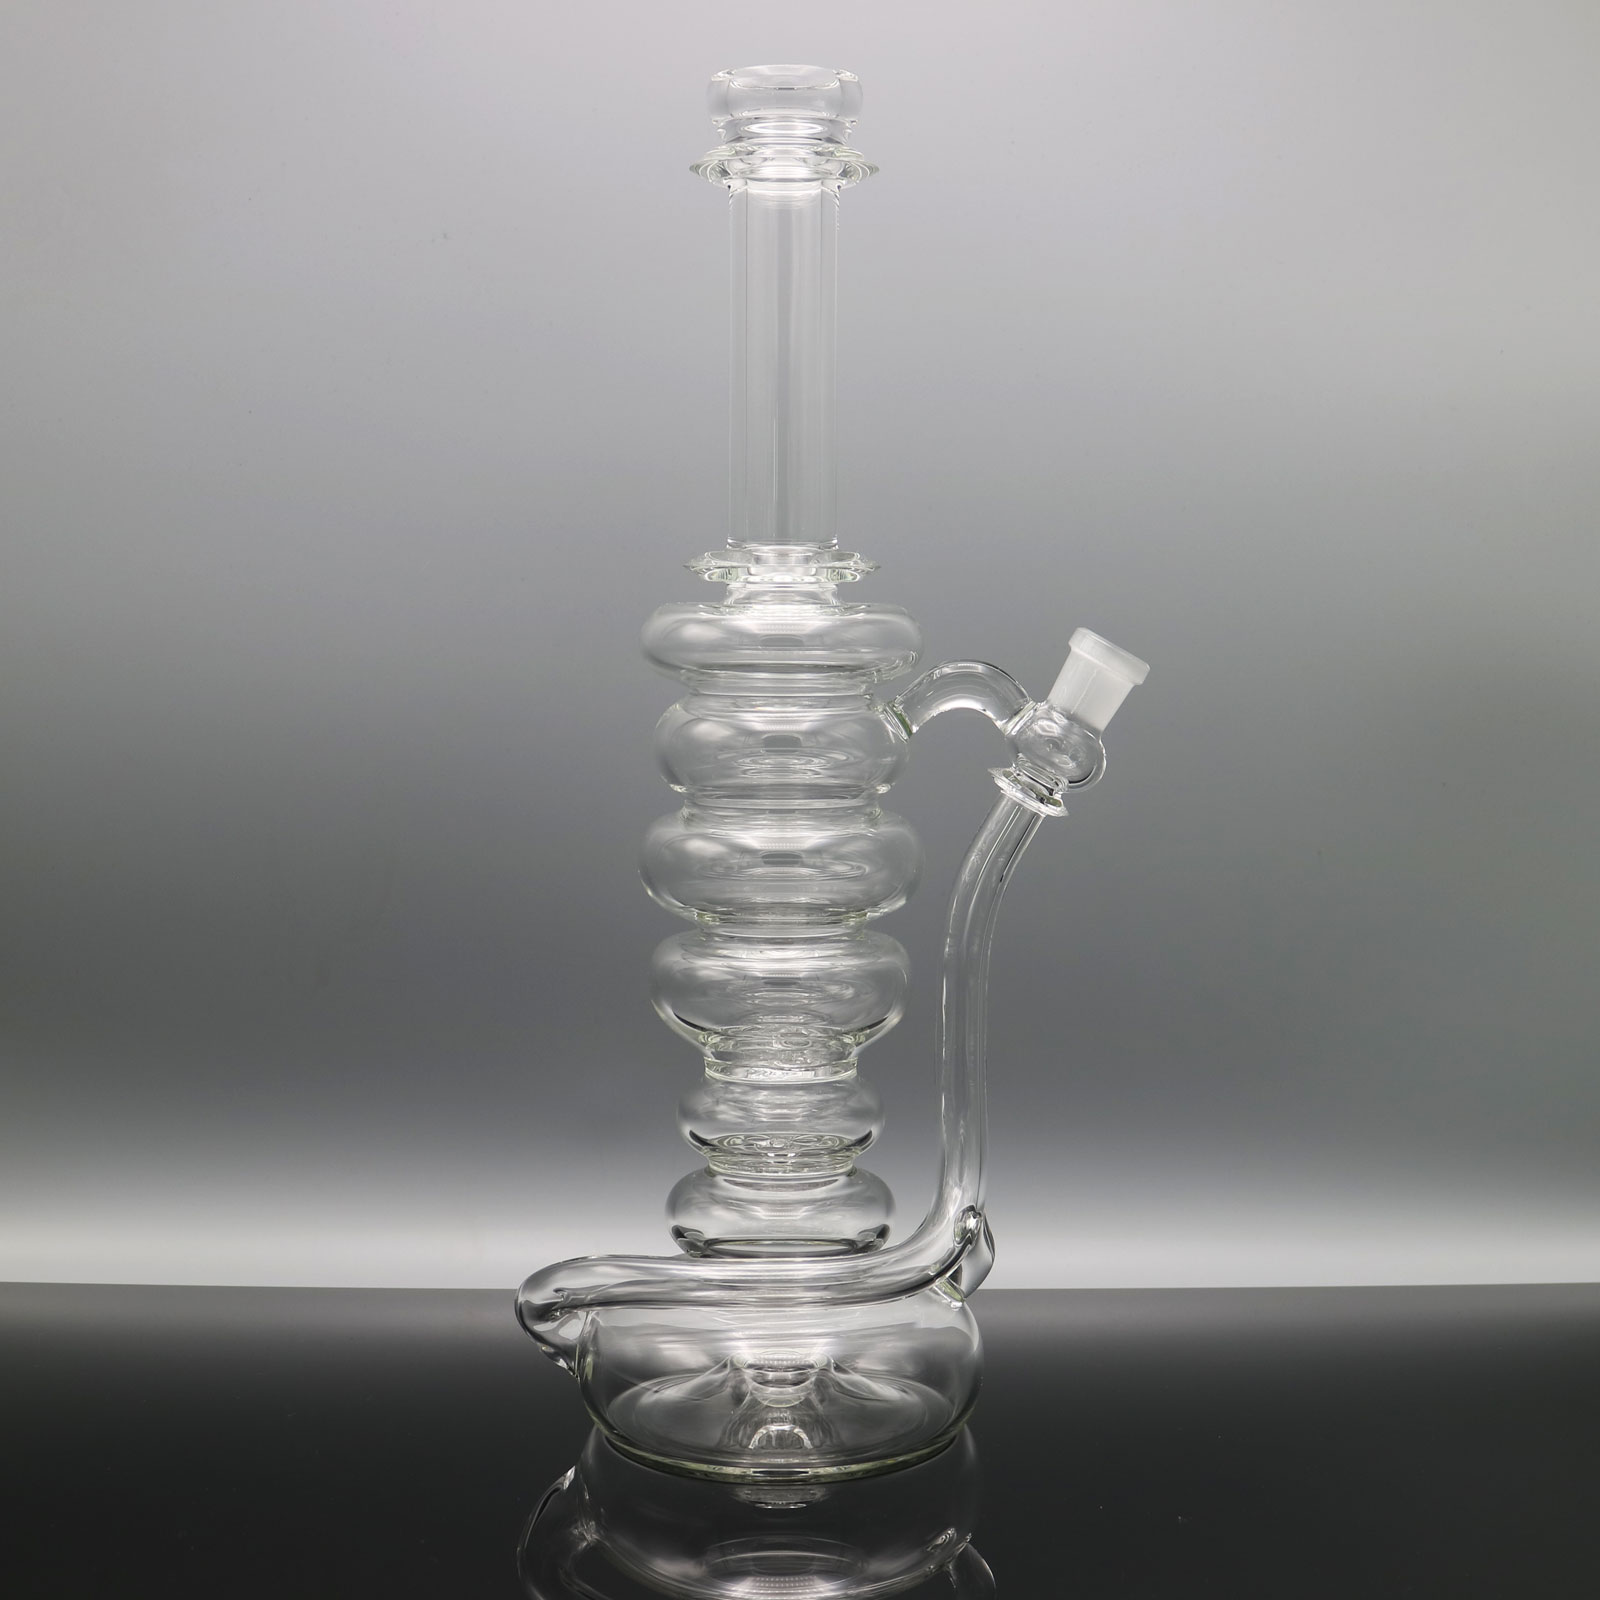 Mike Philpot – 2020 Clear Double Disc Diffuser Longneck Phlowerpot